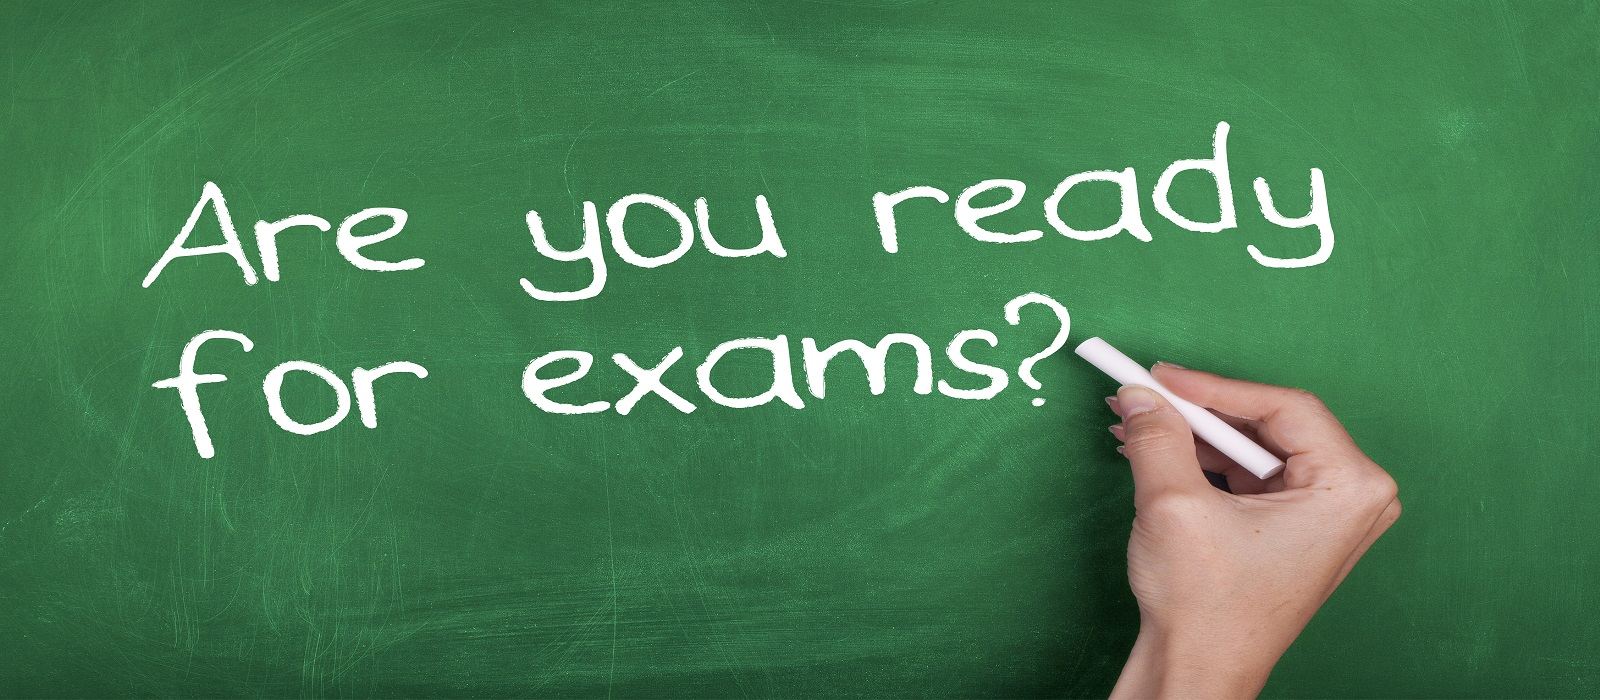 examination services scheduling and examination services